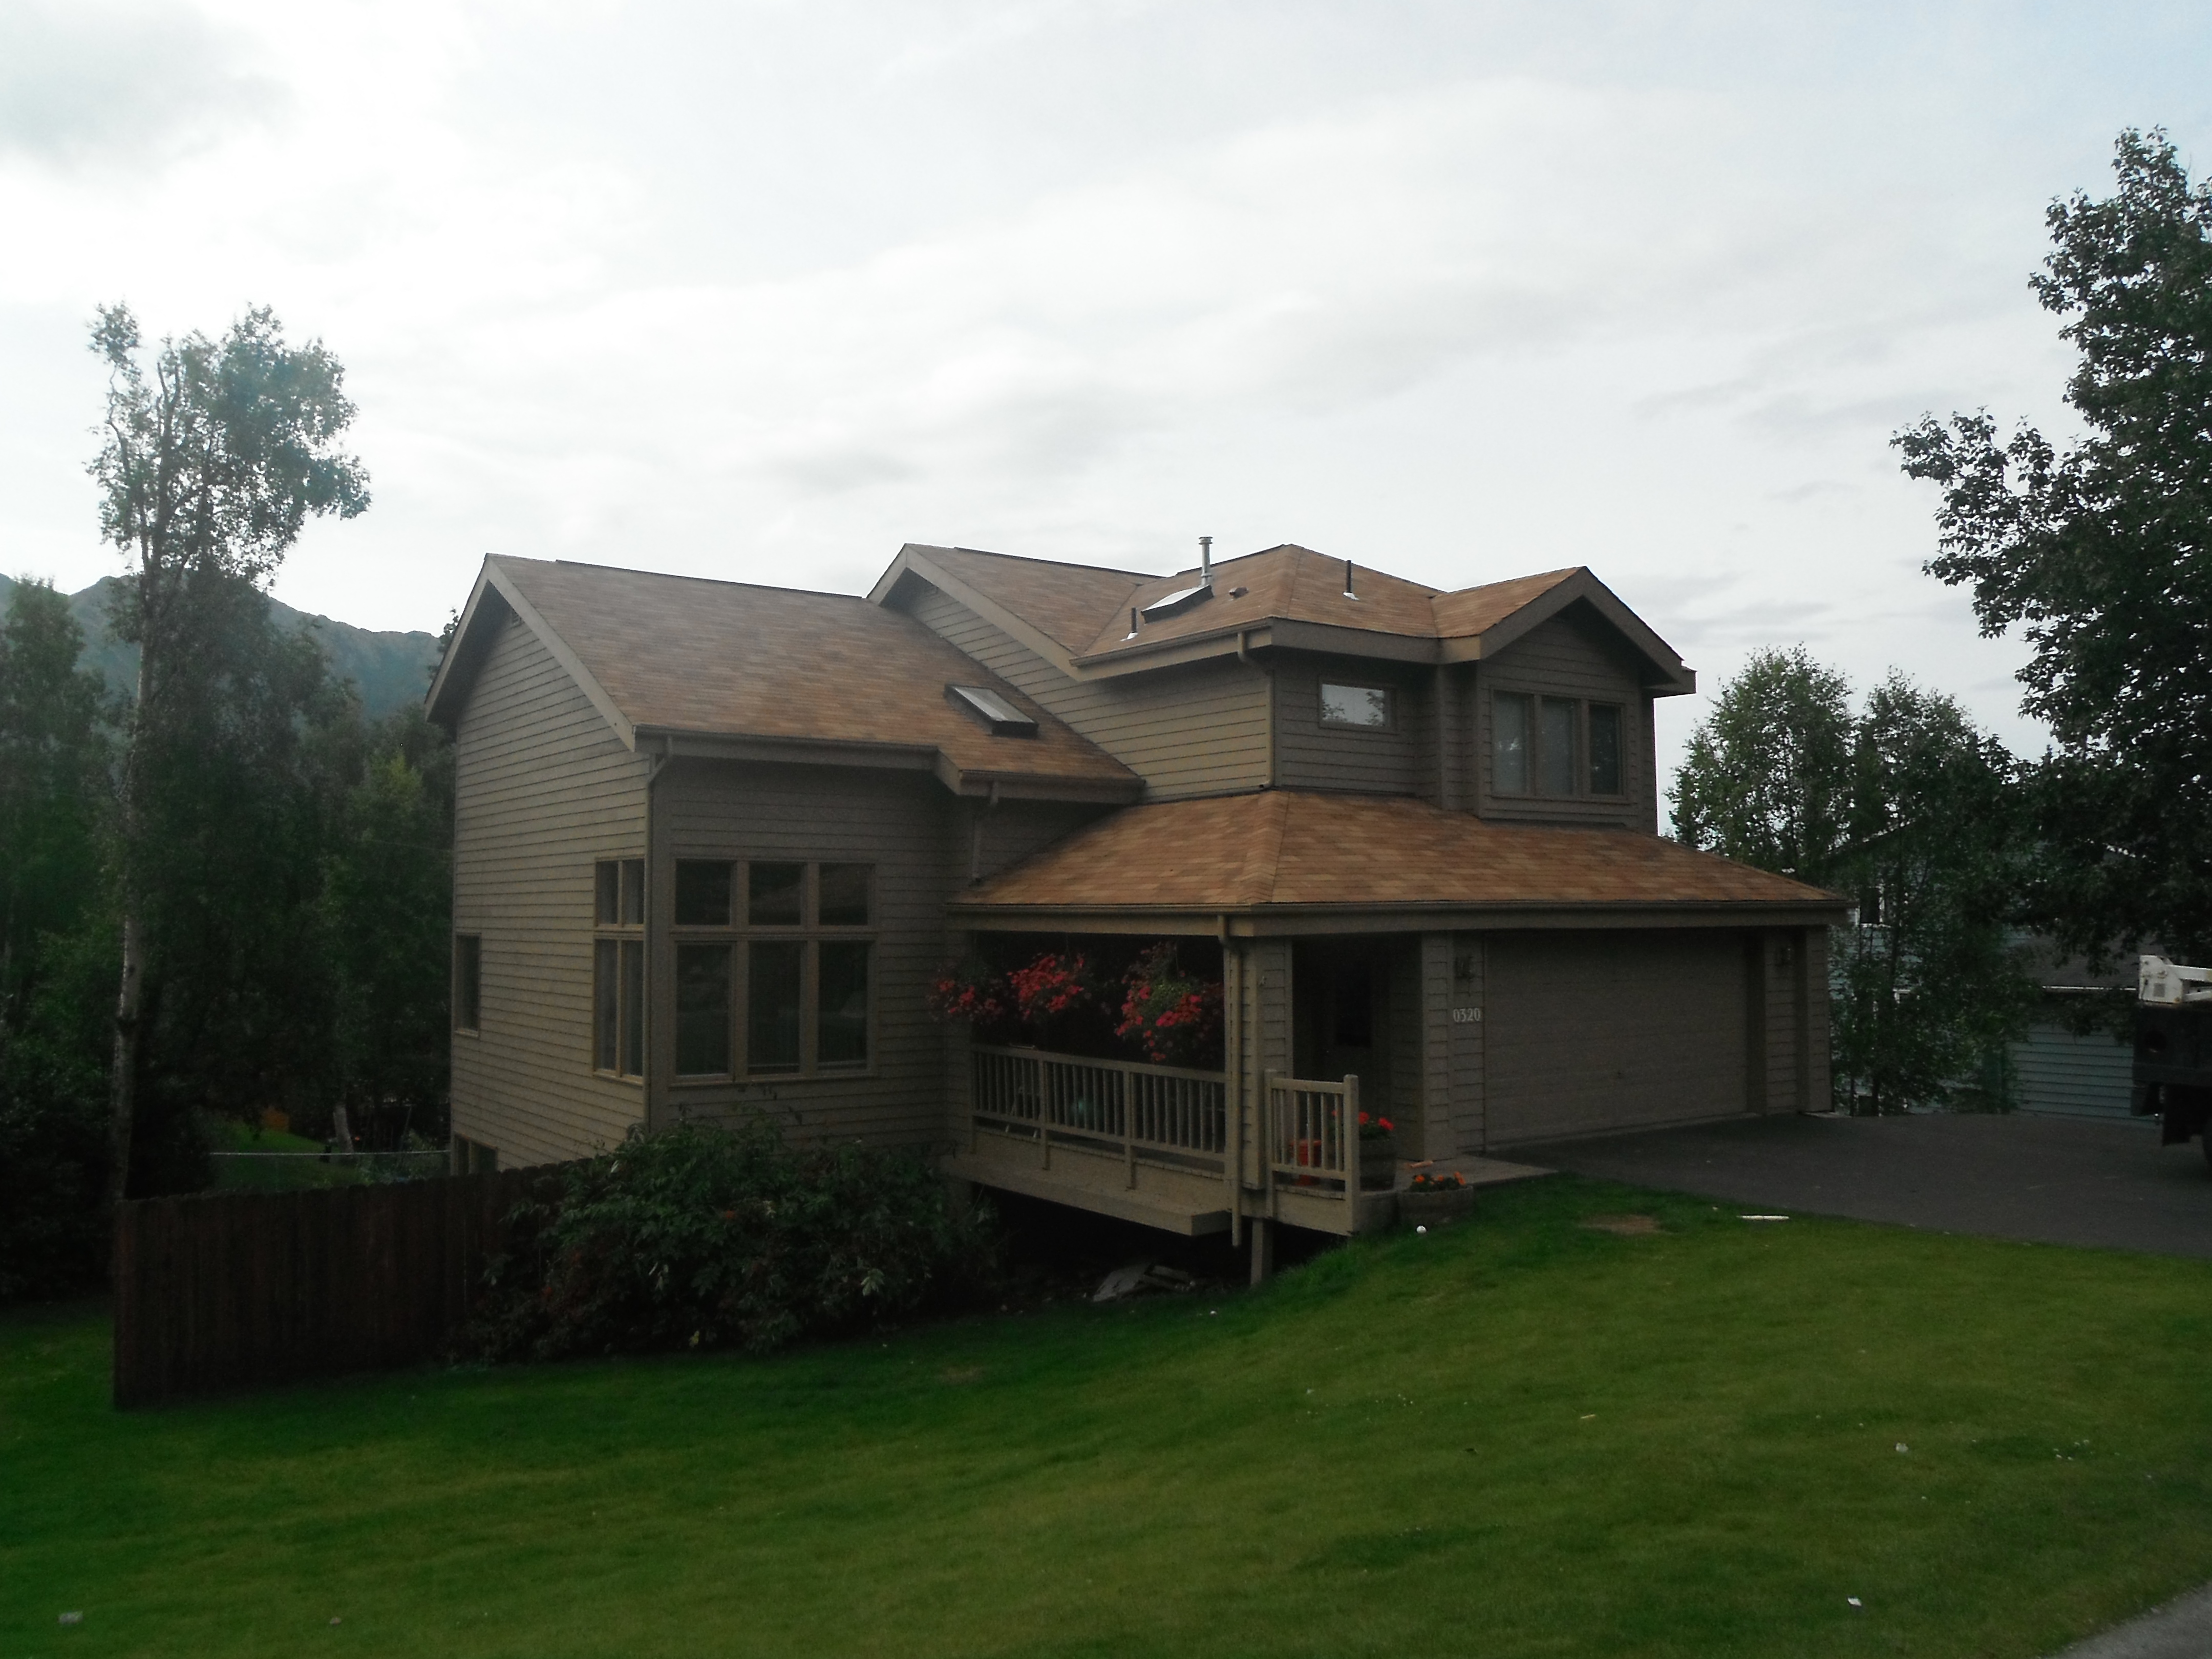 Re-construction roofing by Action Roofing Services